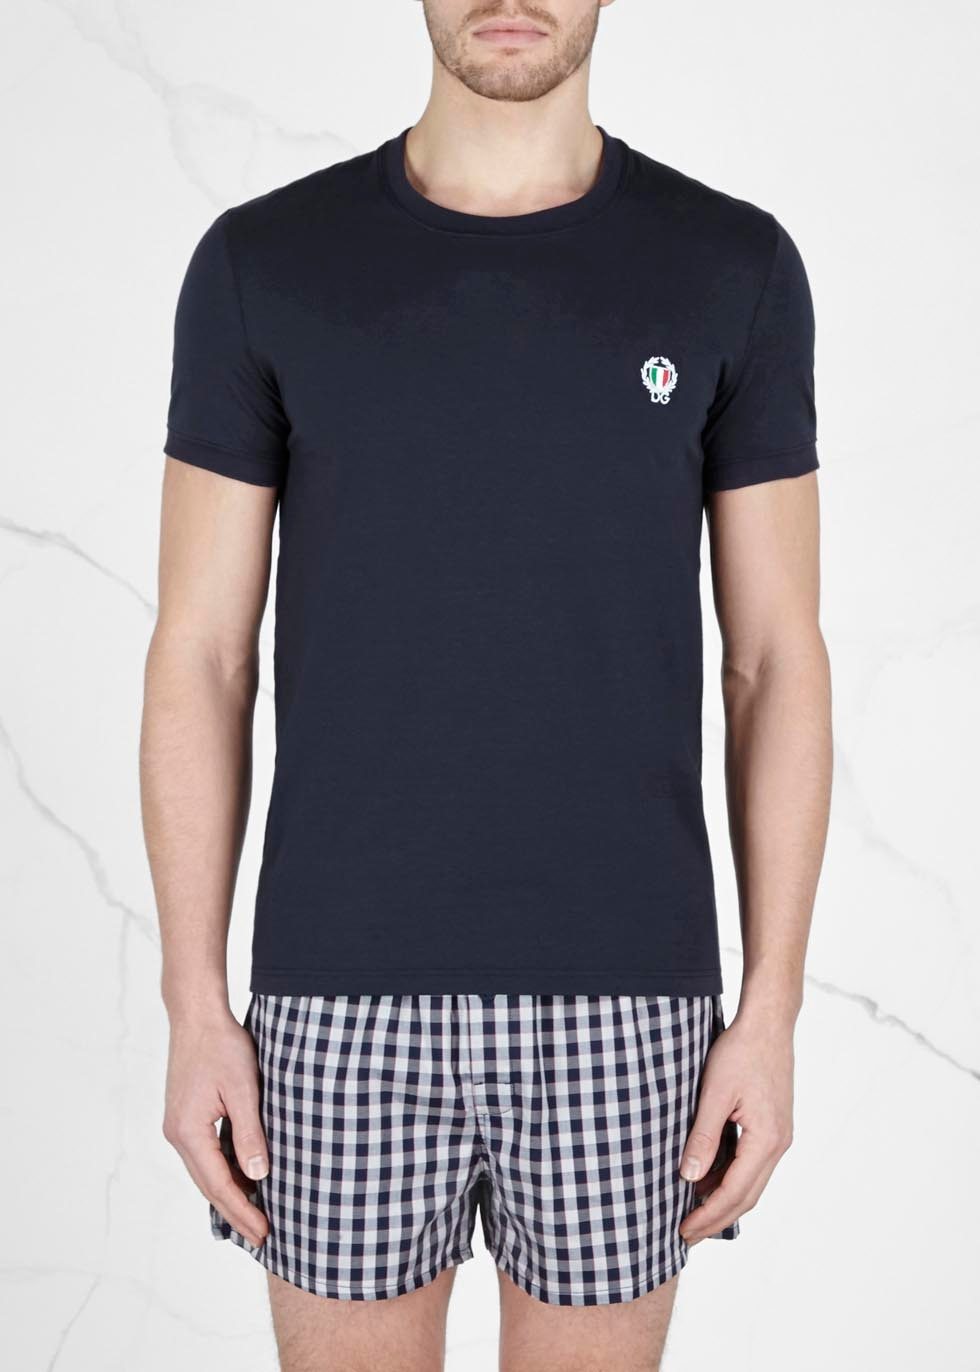 Navy stretch cotton T-shirt - Dolce & Gabbana